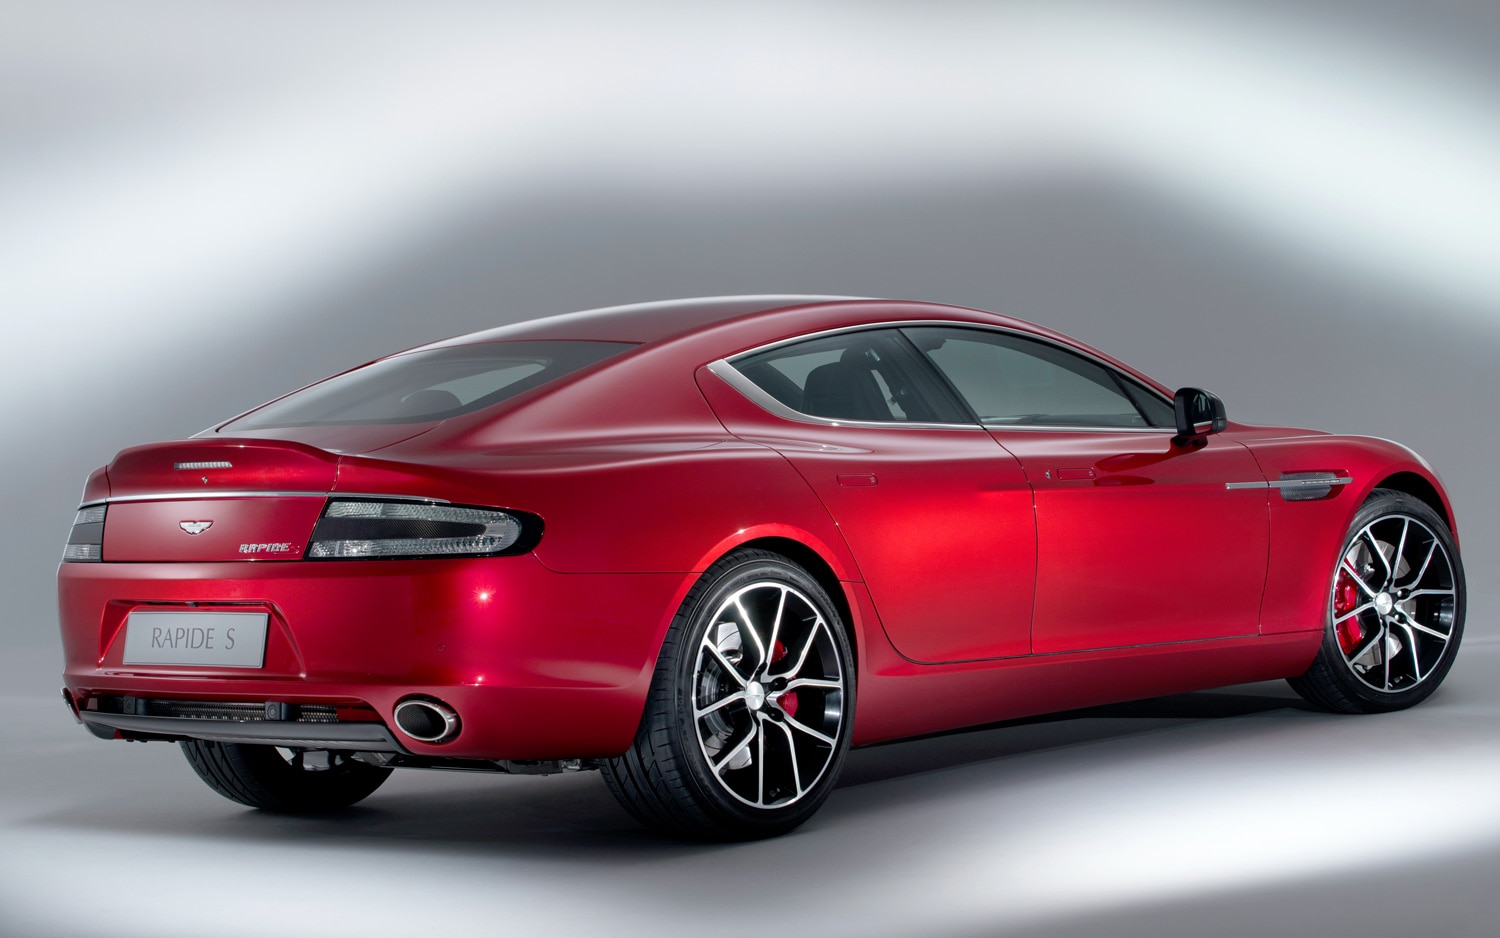 aston martin rapide s gets 550 hp v 12 carbon ceramic brakes. Black Bedroom Furniture Sets. Home Design Ideas